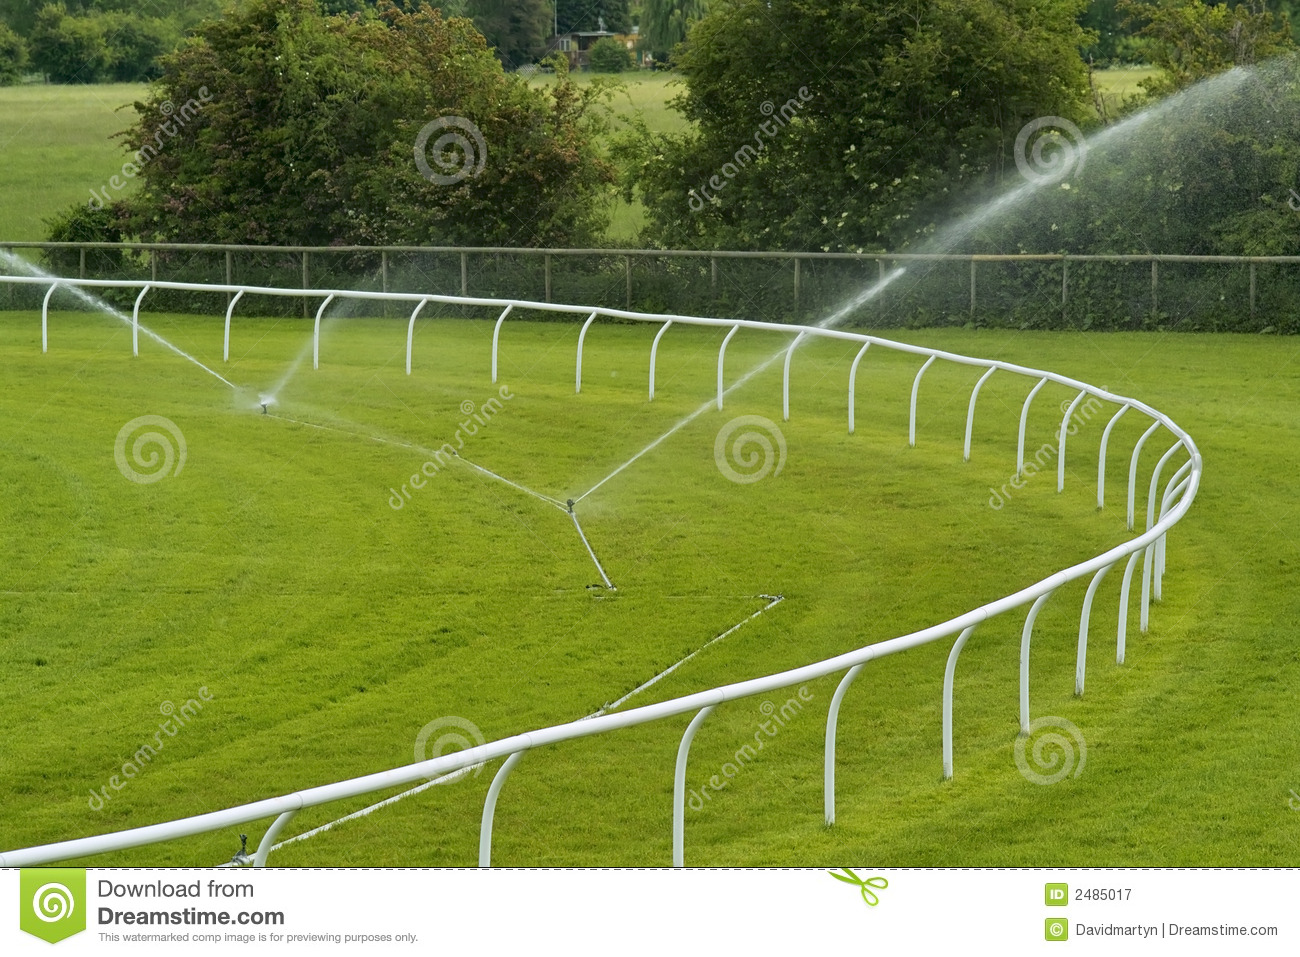 Sprinklers On Racecourse Royalty Free Stock Photography   Image